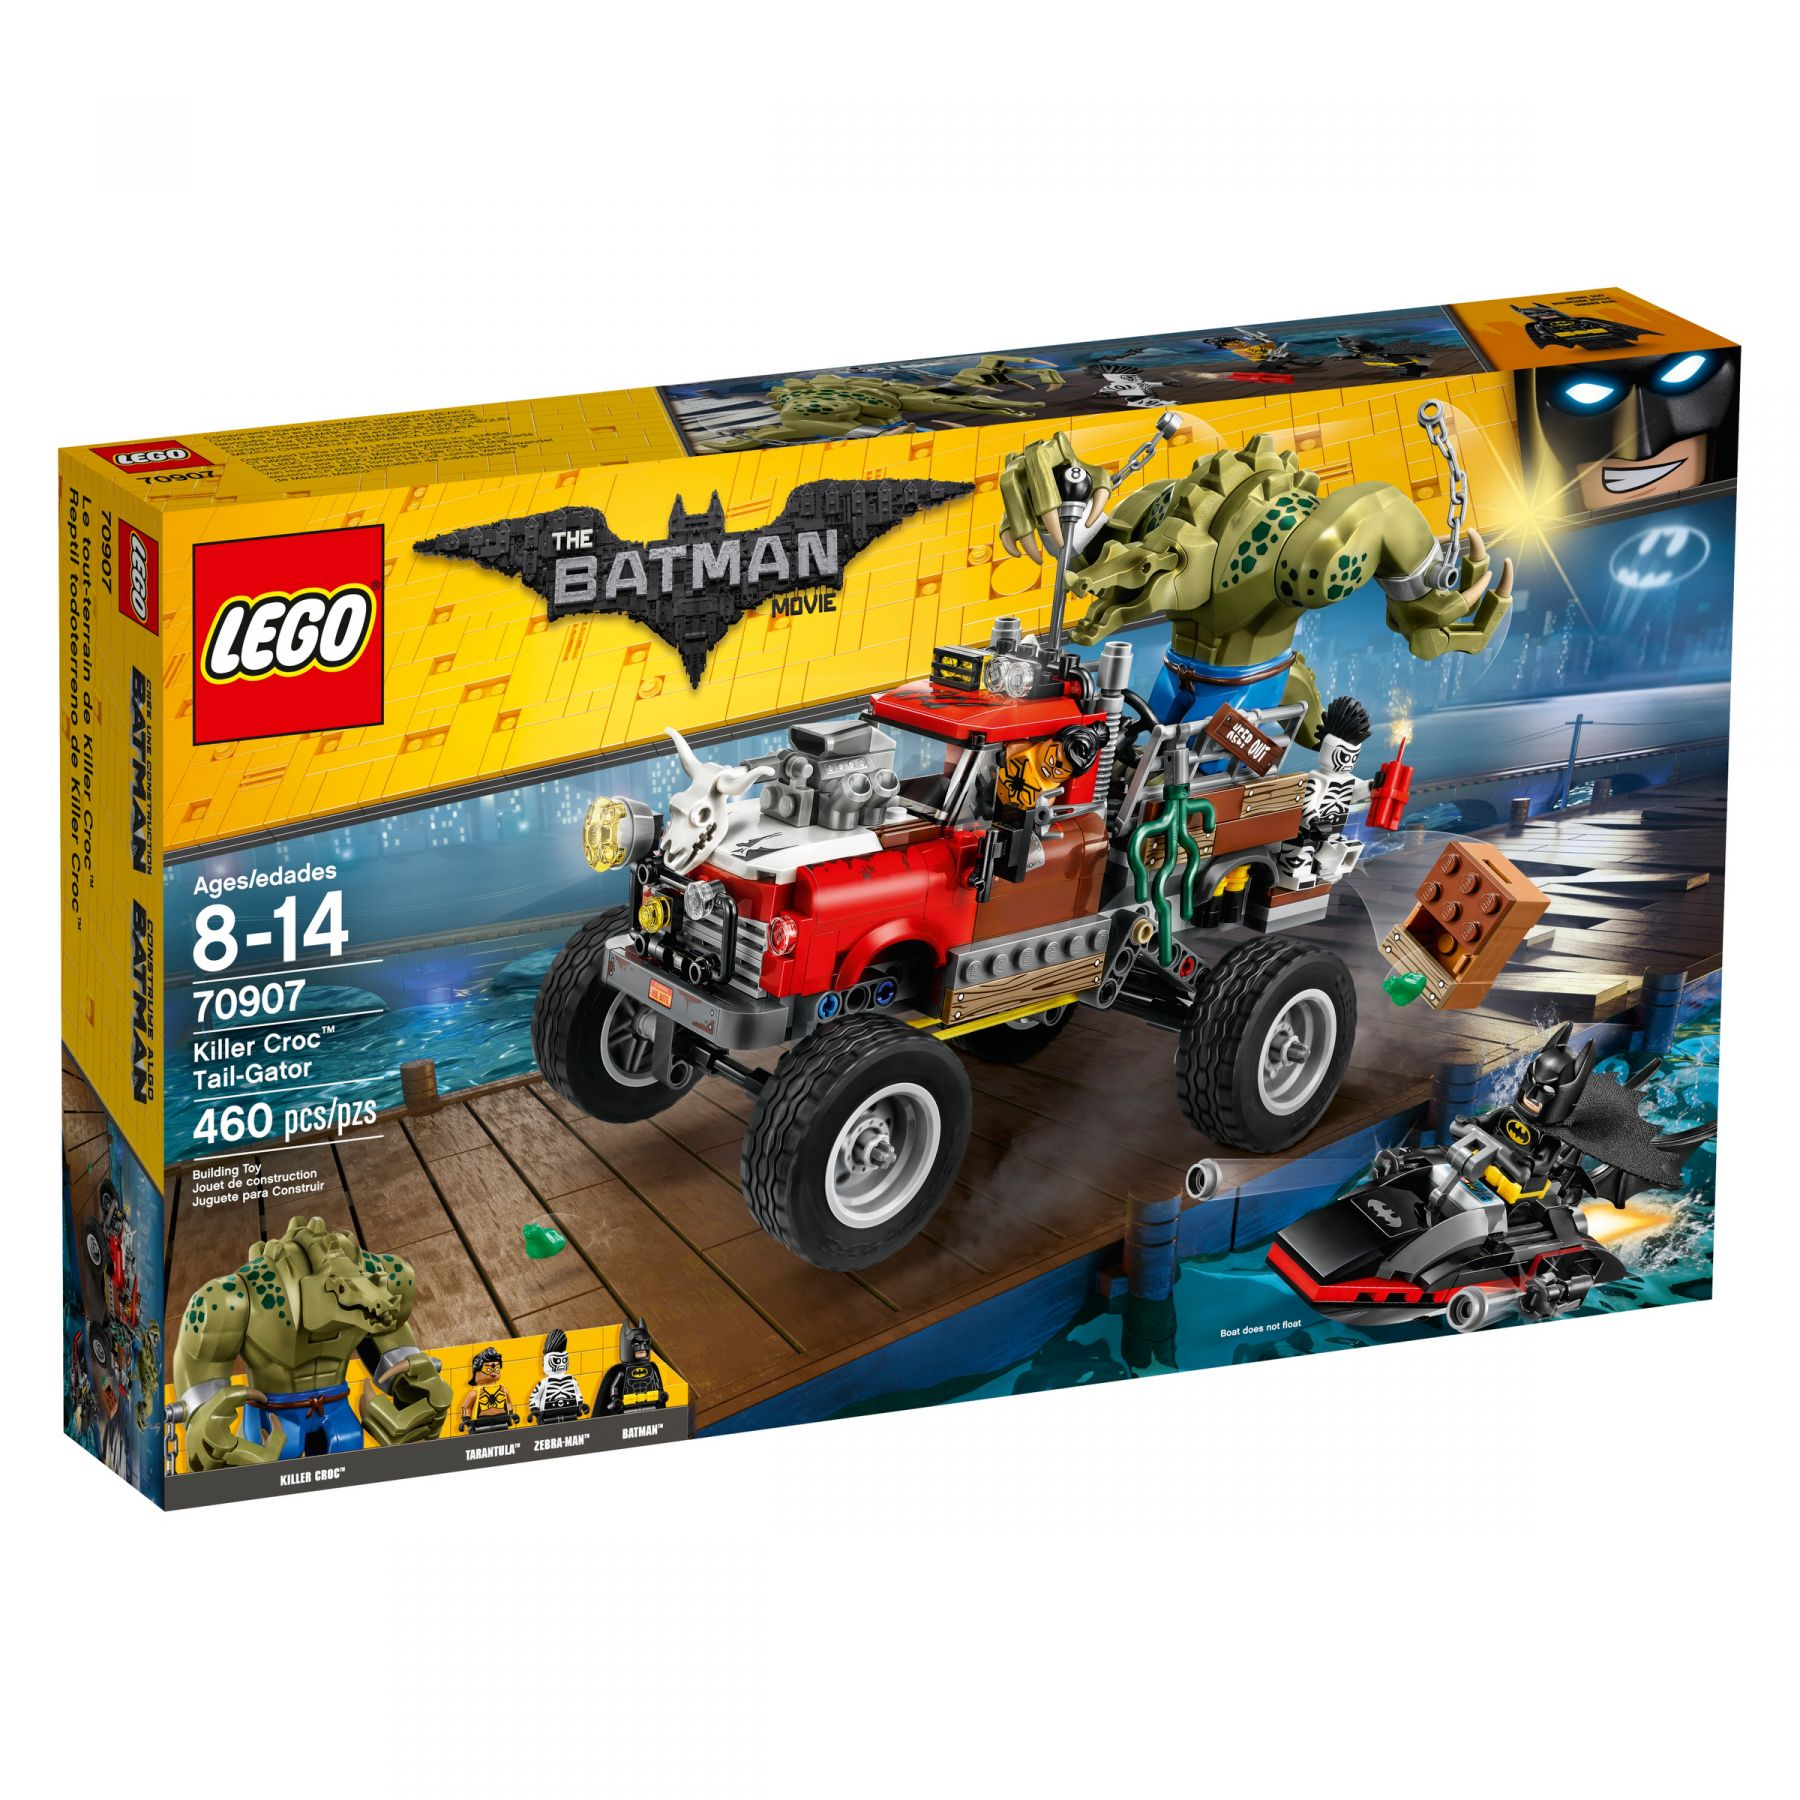 LEGO The LEGO Batman Movie 70907 Killer Crocs Truck LEGO_70907_alt1.jpg